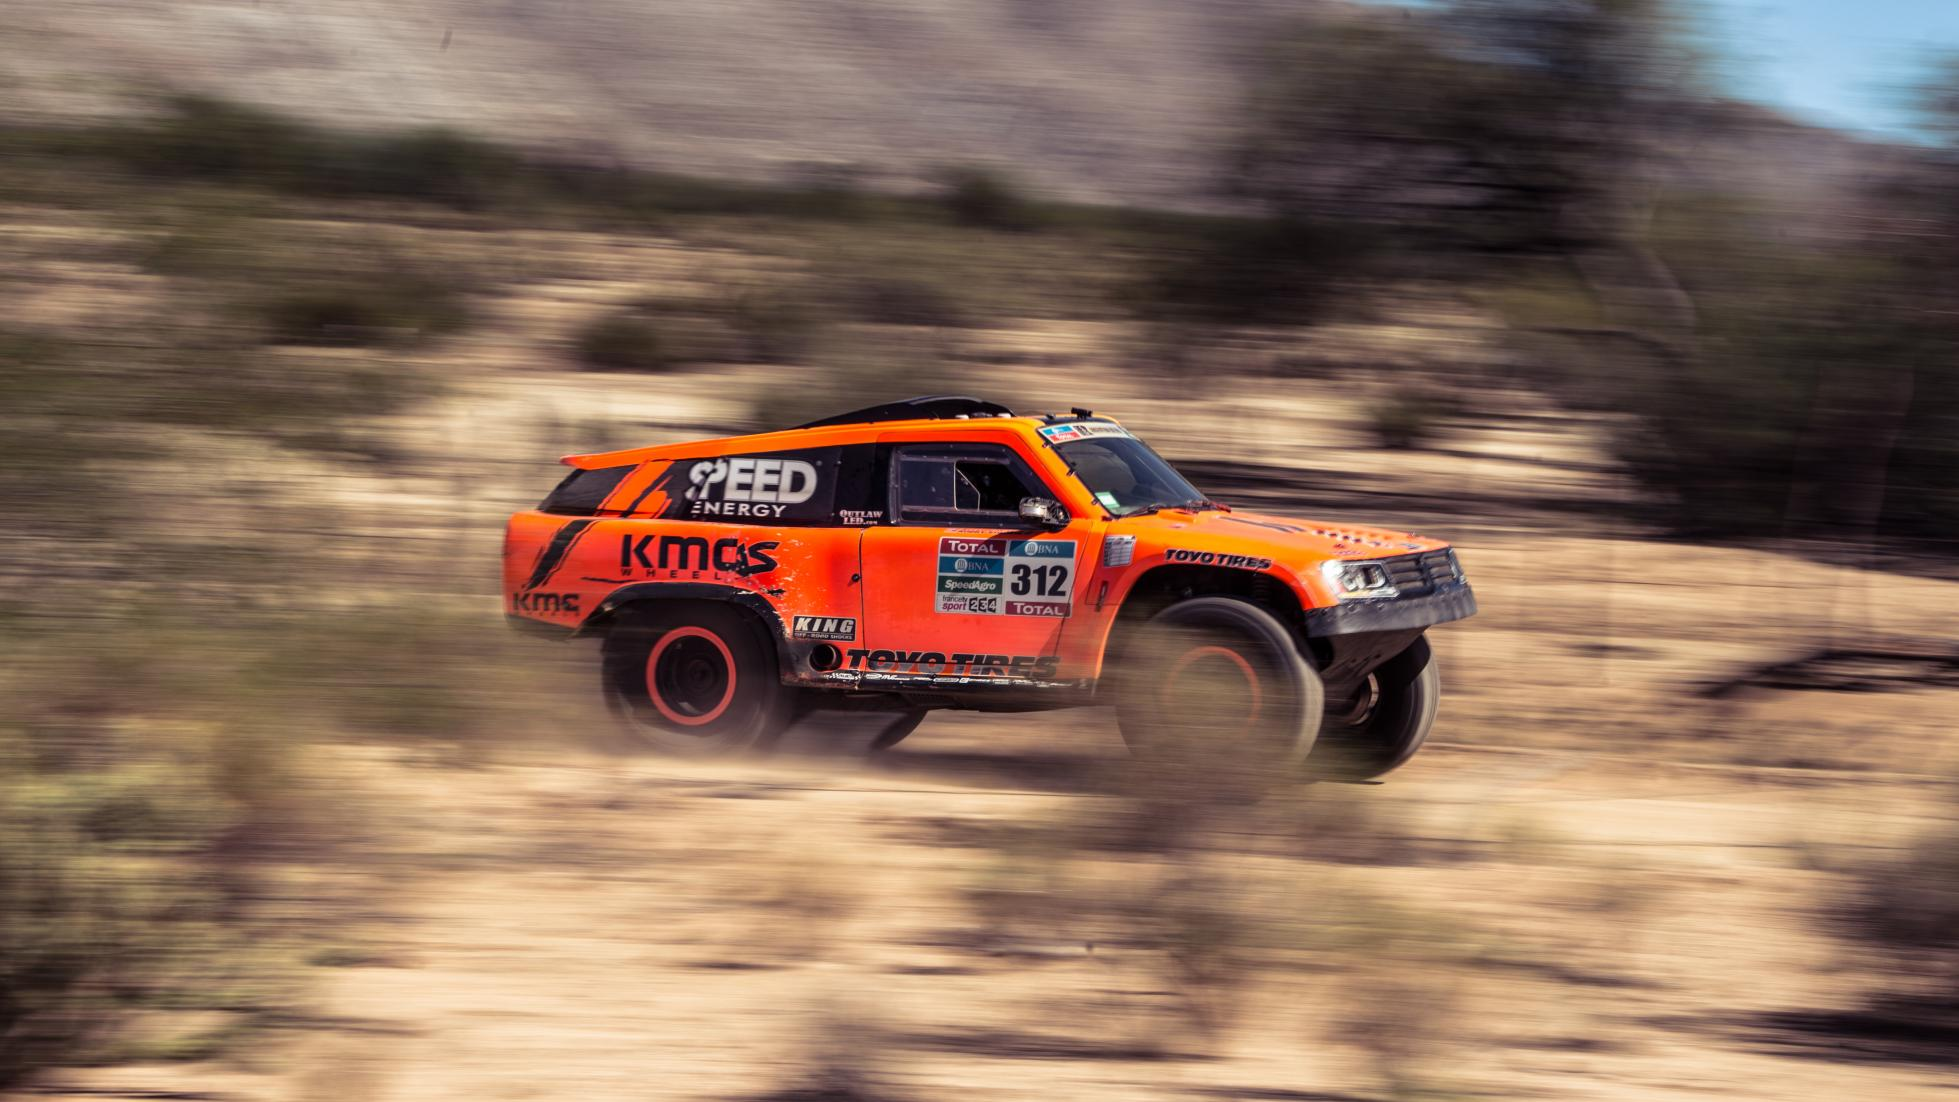 Gordon's Dakar Car with 800hp Photo: topgear